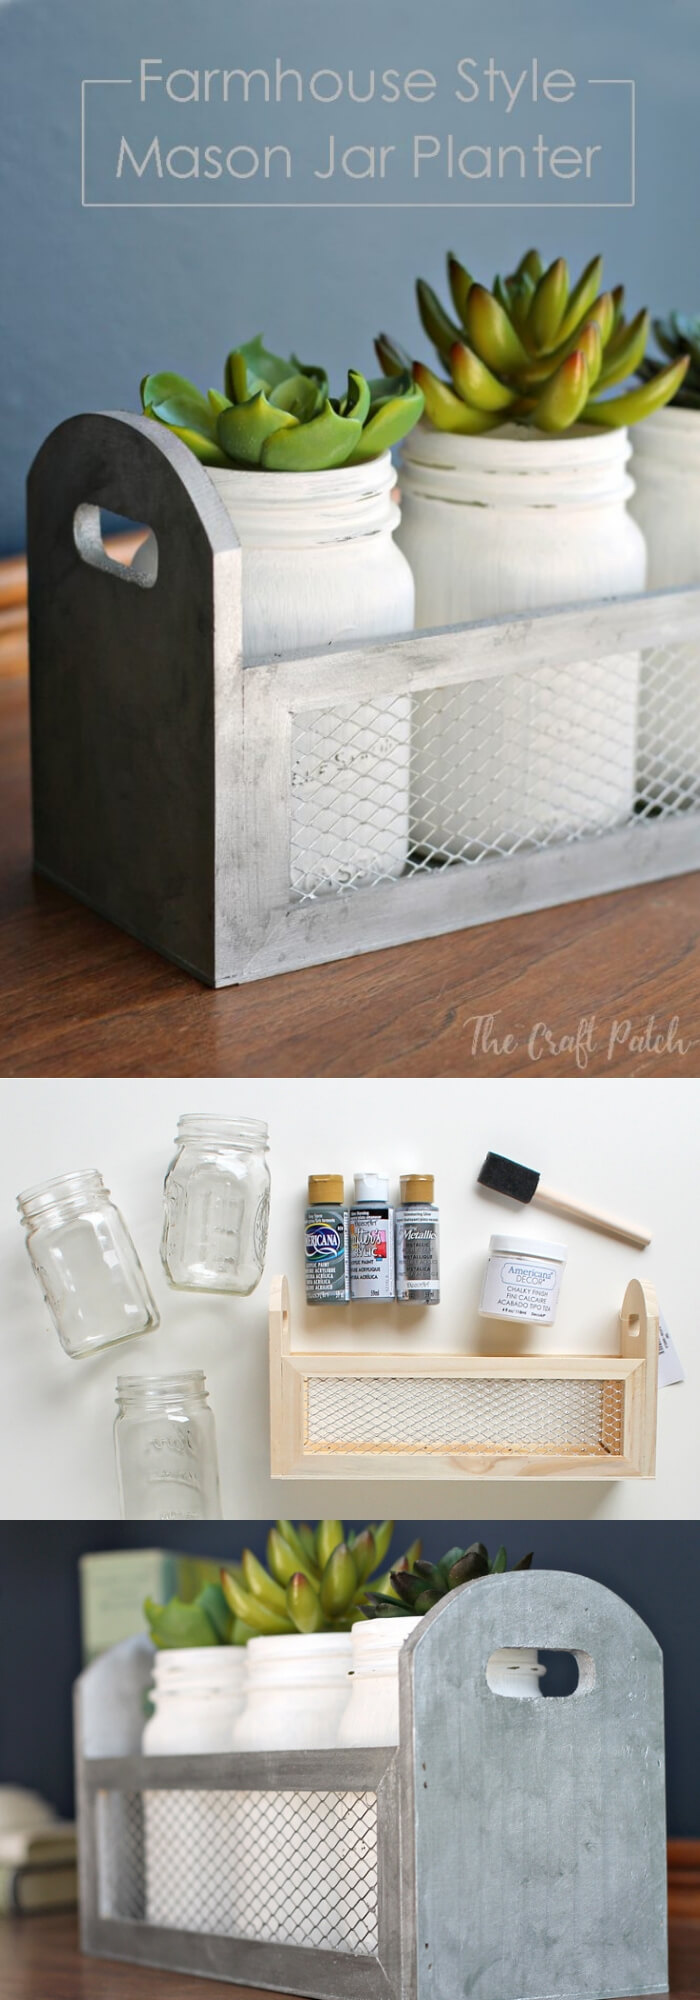 DIY Farmhouse Style Mason Jar Planter | Best Farmhouse Indoor Plant Decor Ideas & Designs